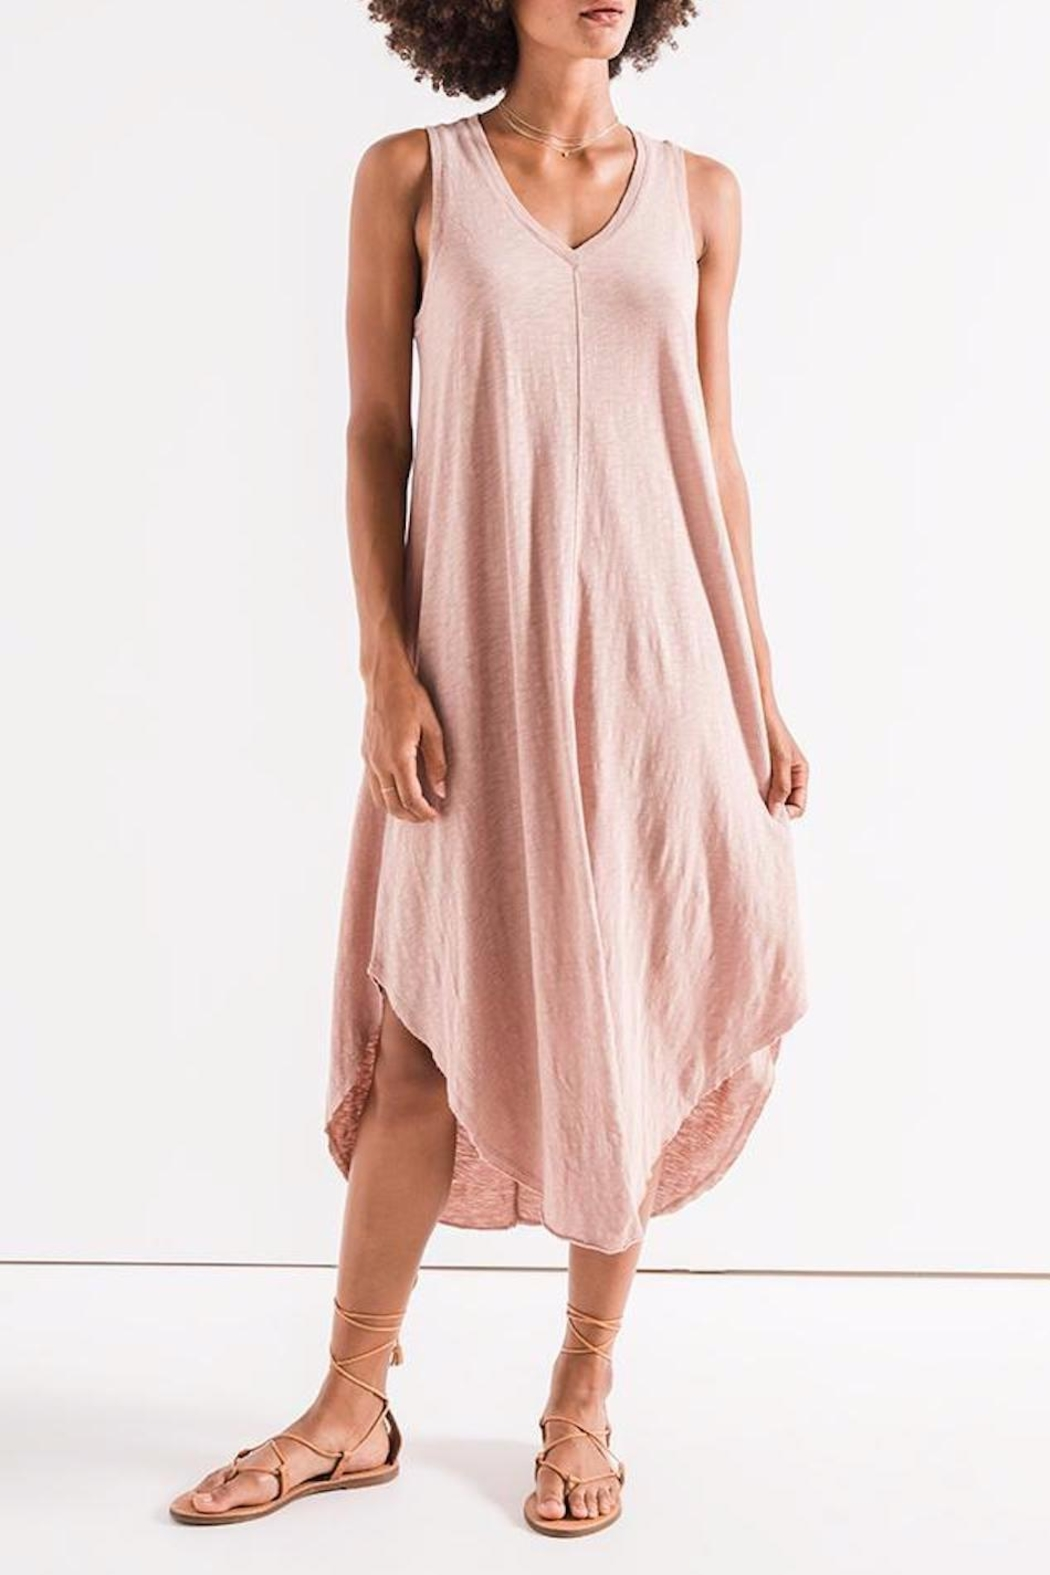 z supply Reverie Midi Dress - Main Image